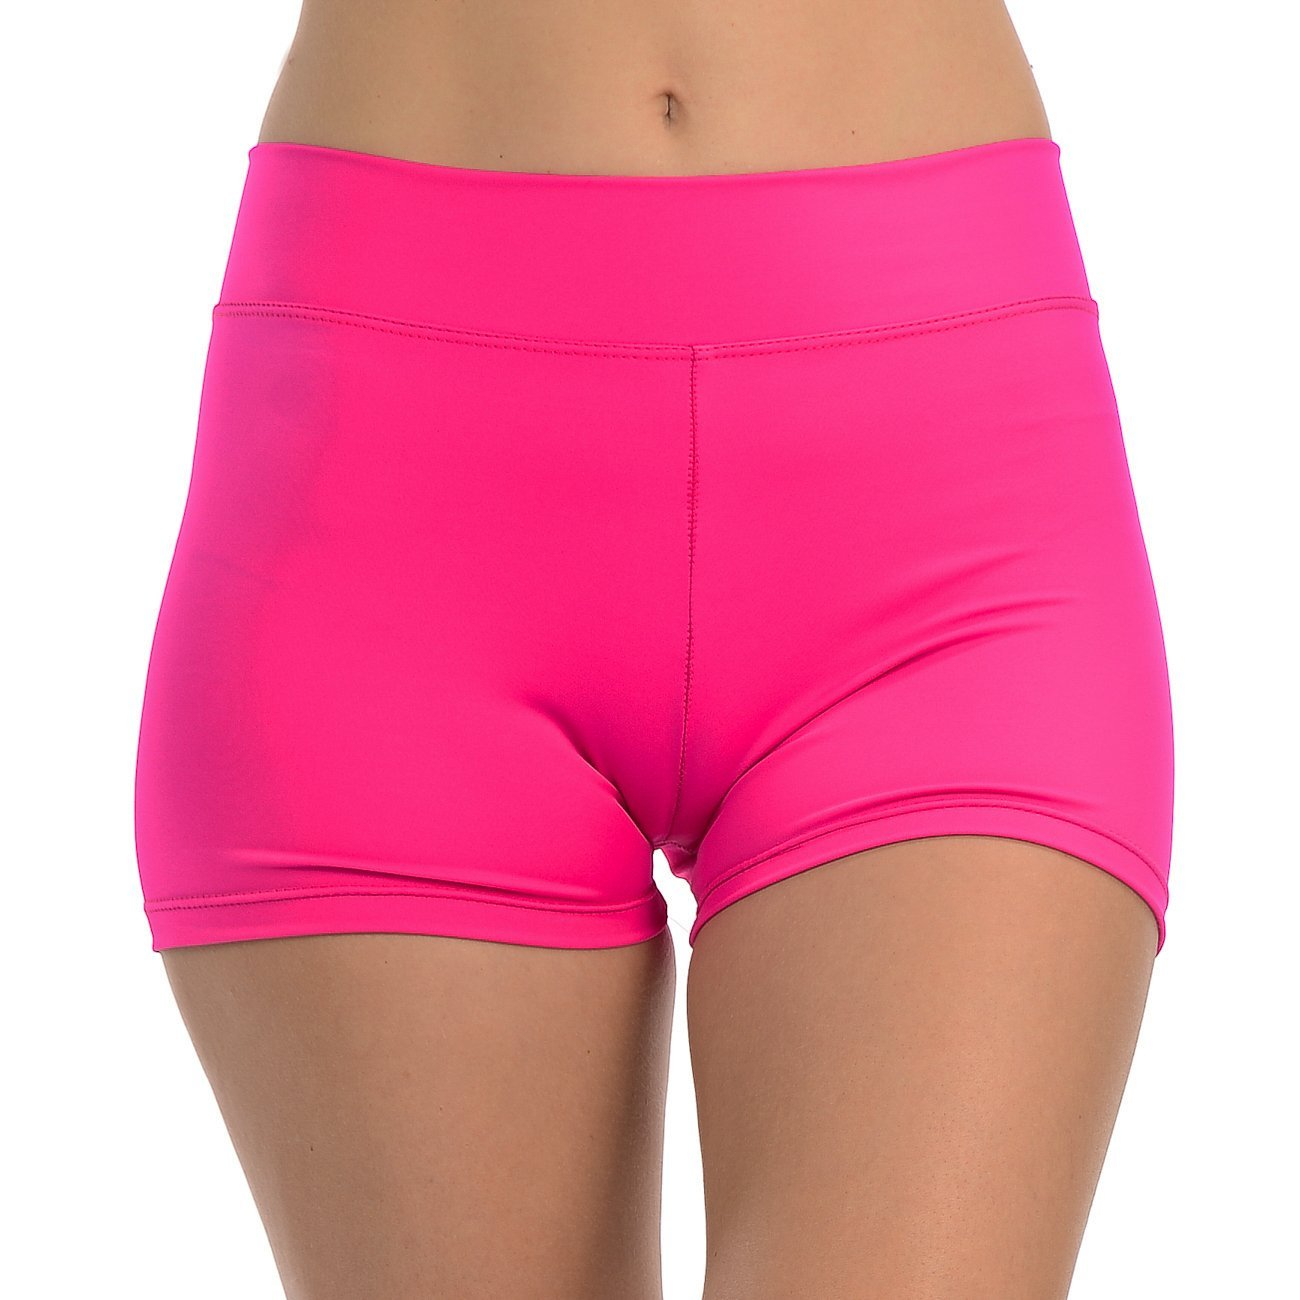 ANZA Girls Active Wear Dance Booty Shorts-Fuchsia,Large(12/14) by Anza Collection